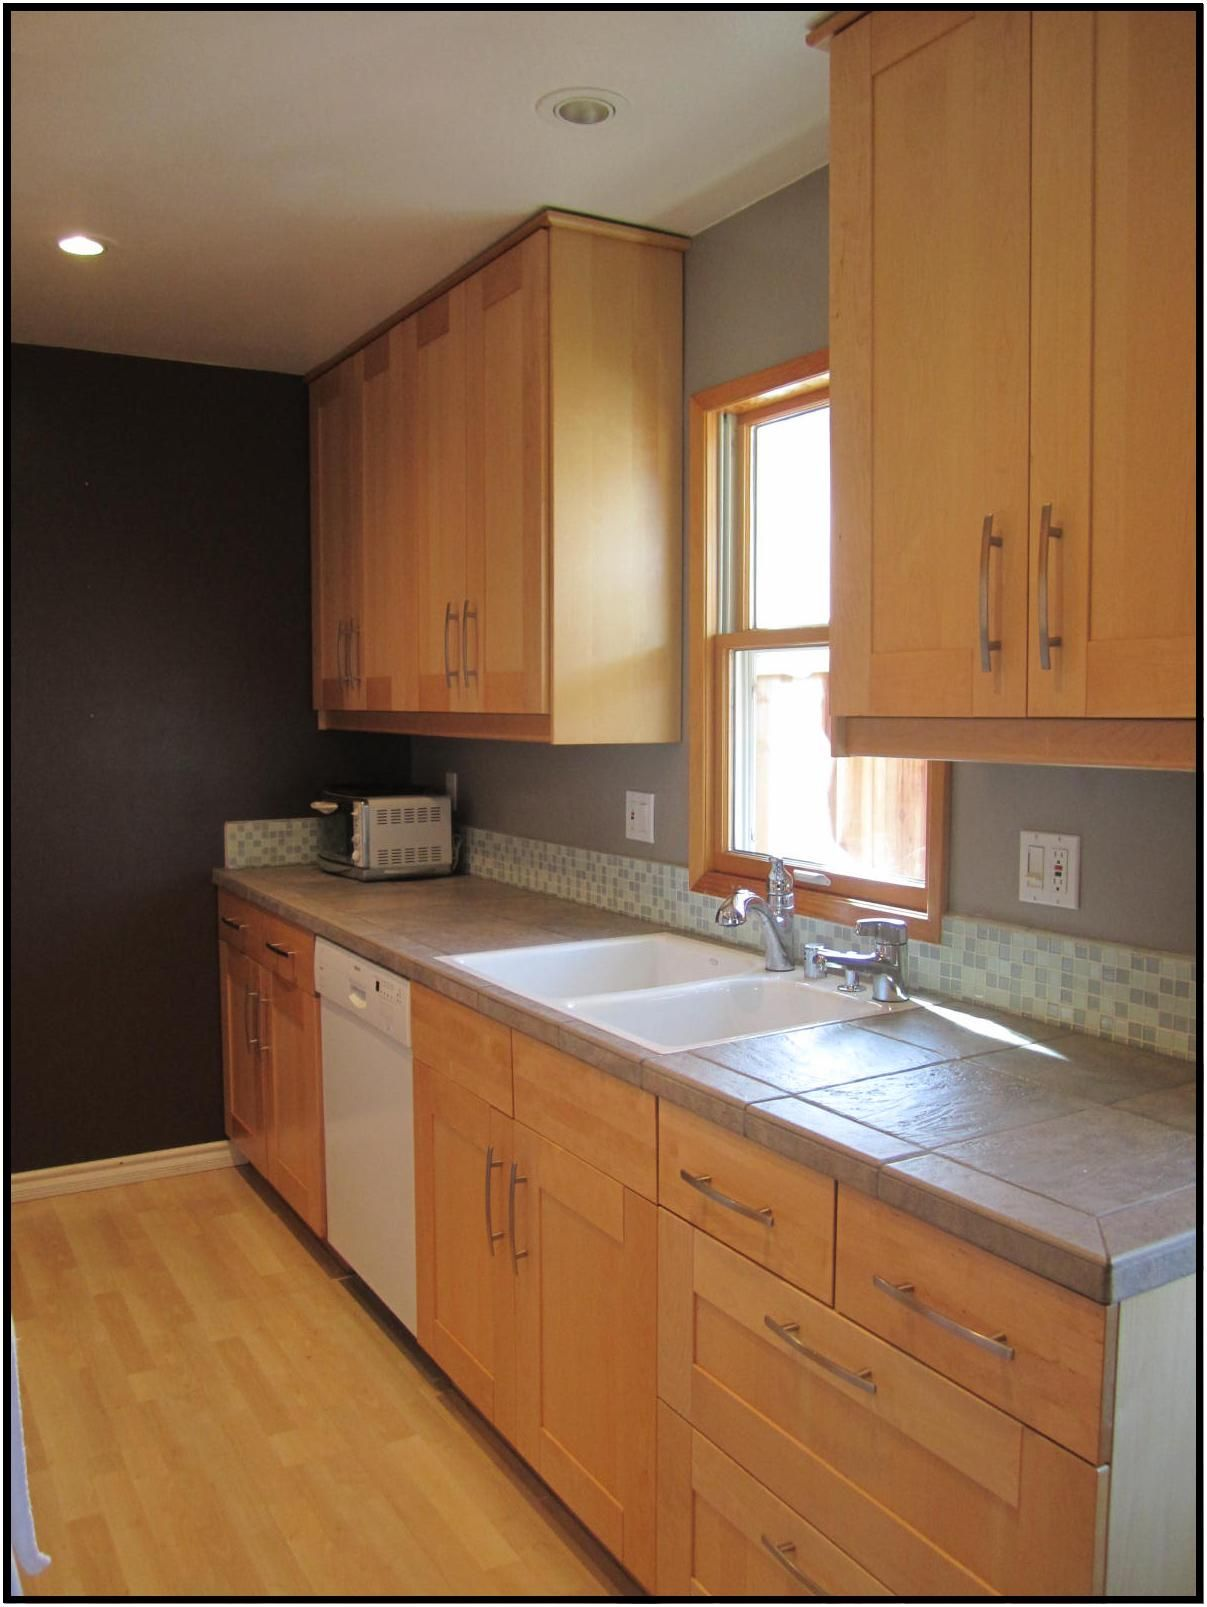 Maple Cabinets Gray Counters And Short Glass Backsplash Backsplash Designs Cheap Backsplash Tile Kitchen Remodel